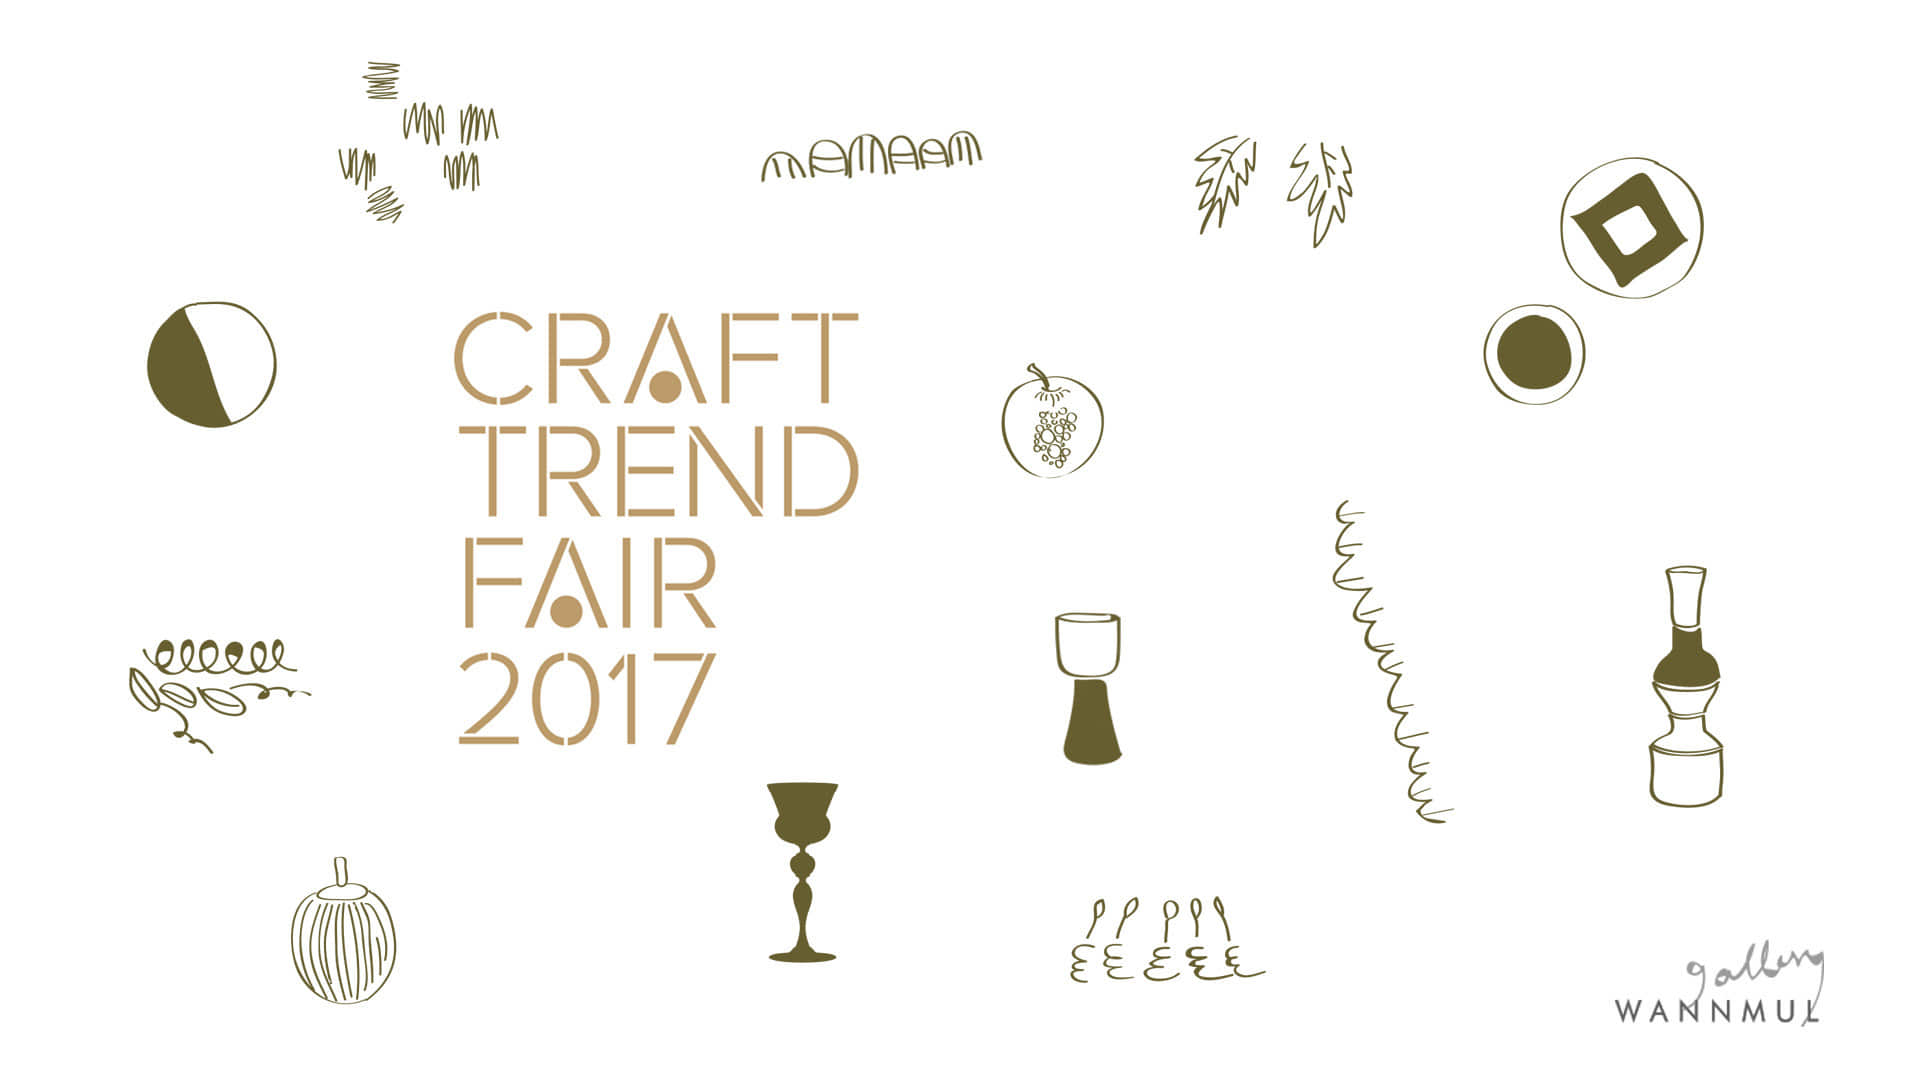 CRAFT TREND FAIR 2017